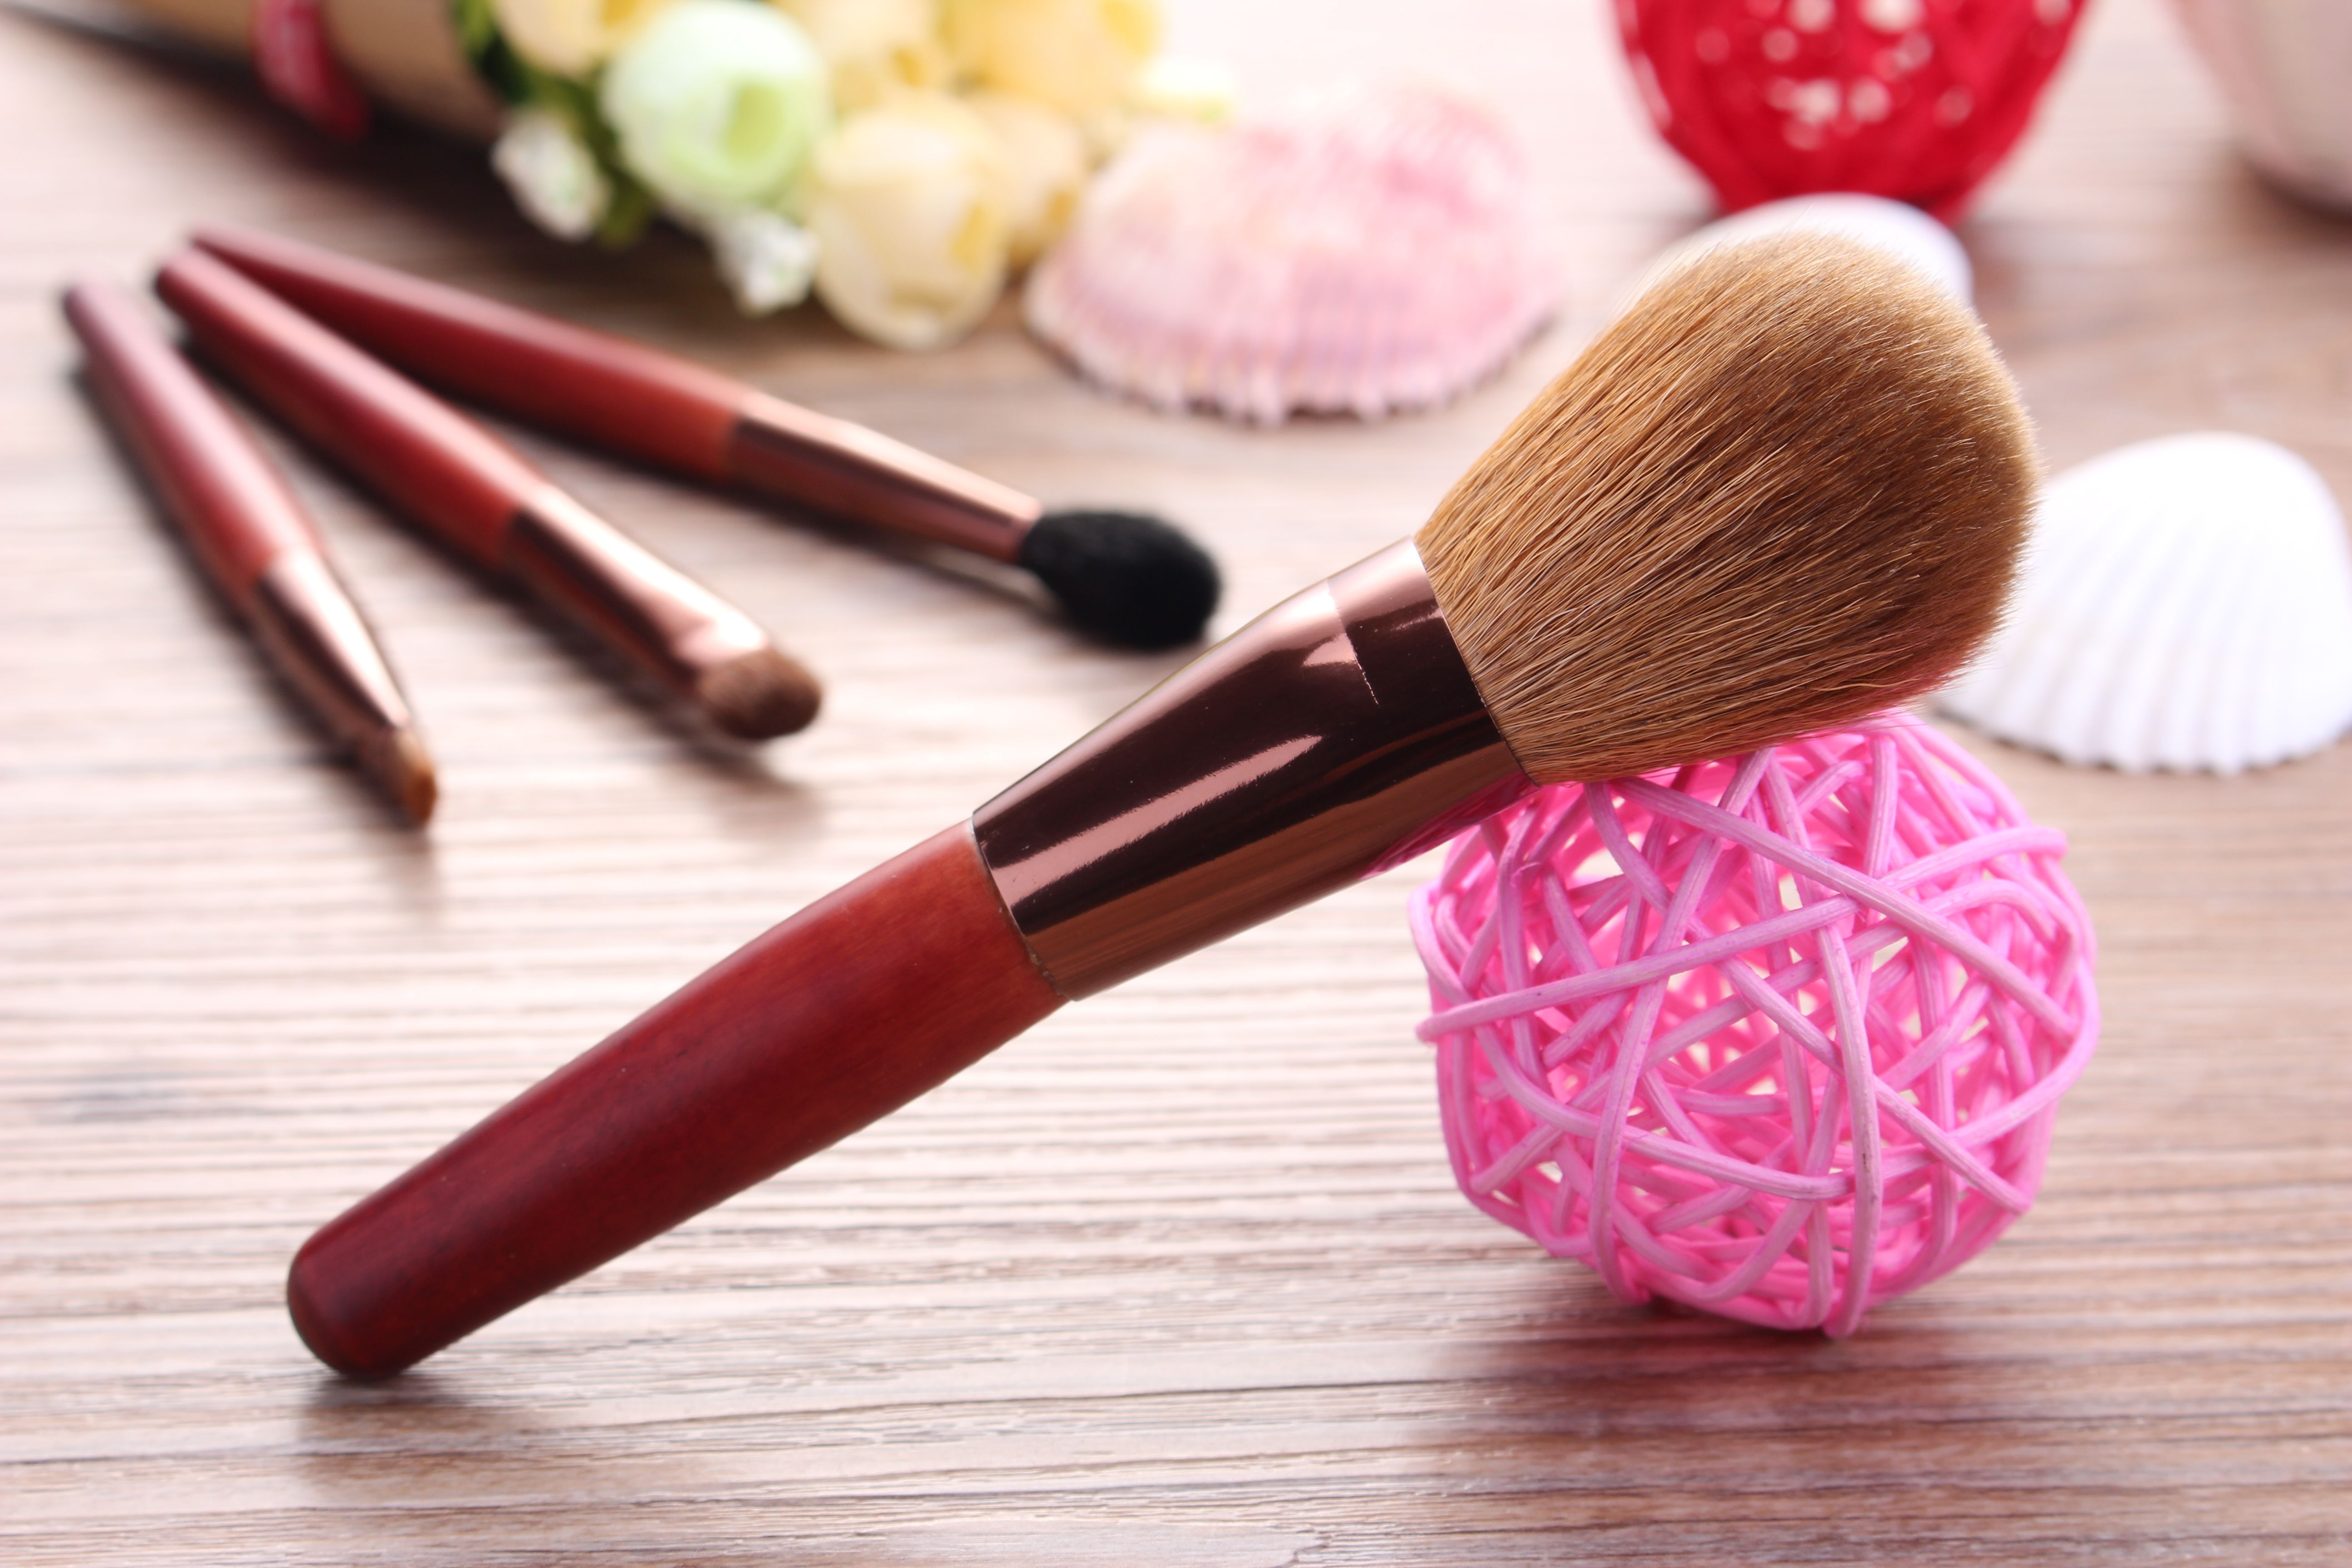 10 PC. Ombré screw handle make up brushes Boutique (With